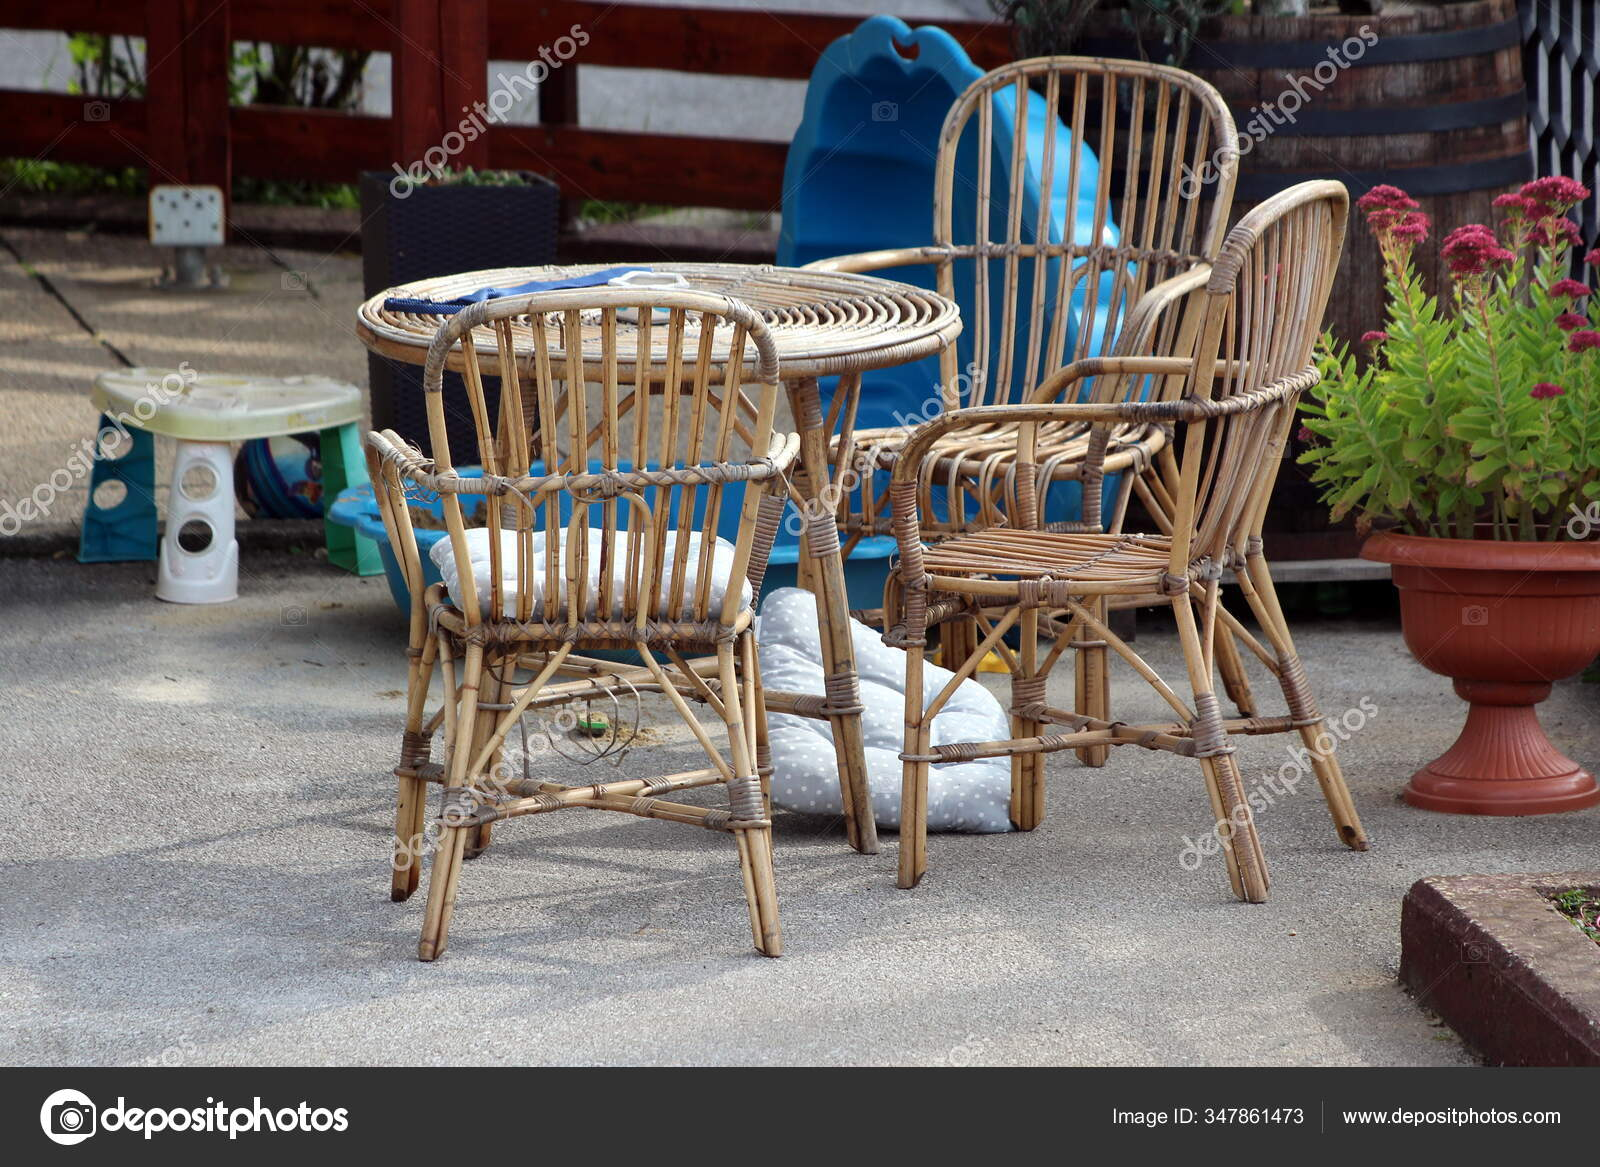 Bamboo Garden Furniture Shape Small, Is Bamboo Good For Outdoor Furniture